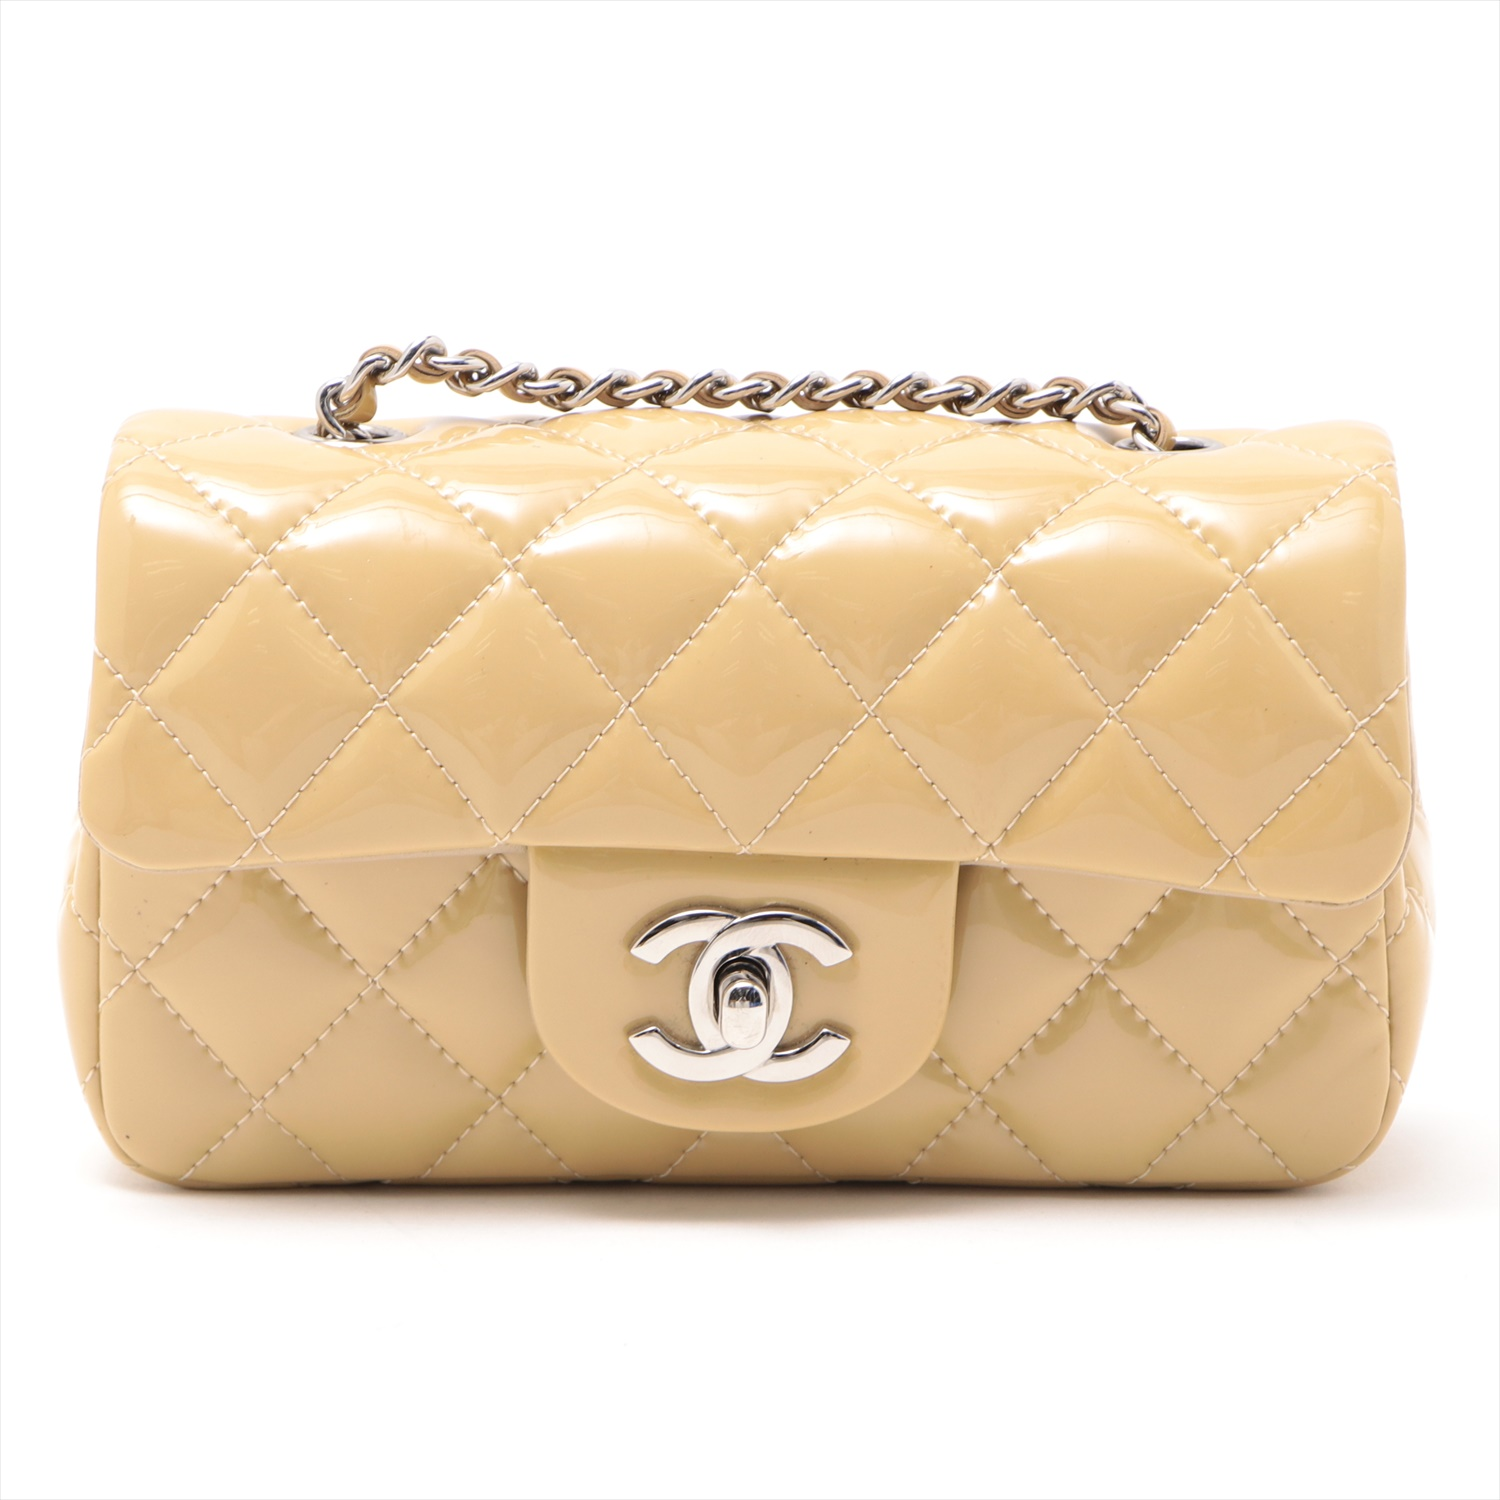 [Used goods] Chanel mini Matorasse patent leather chain shoulder bag Beige Silver hardware